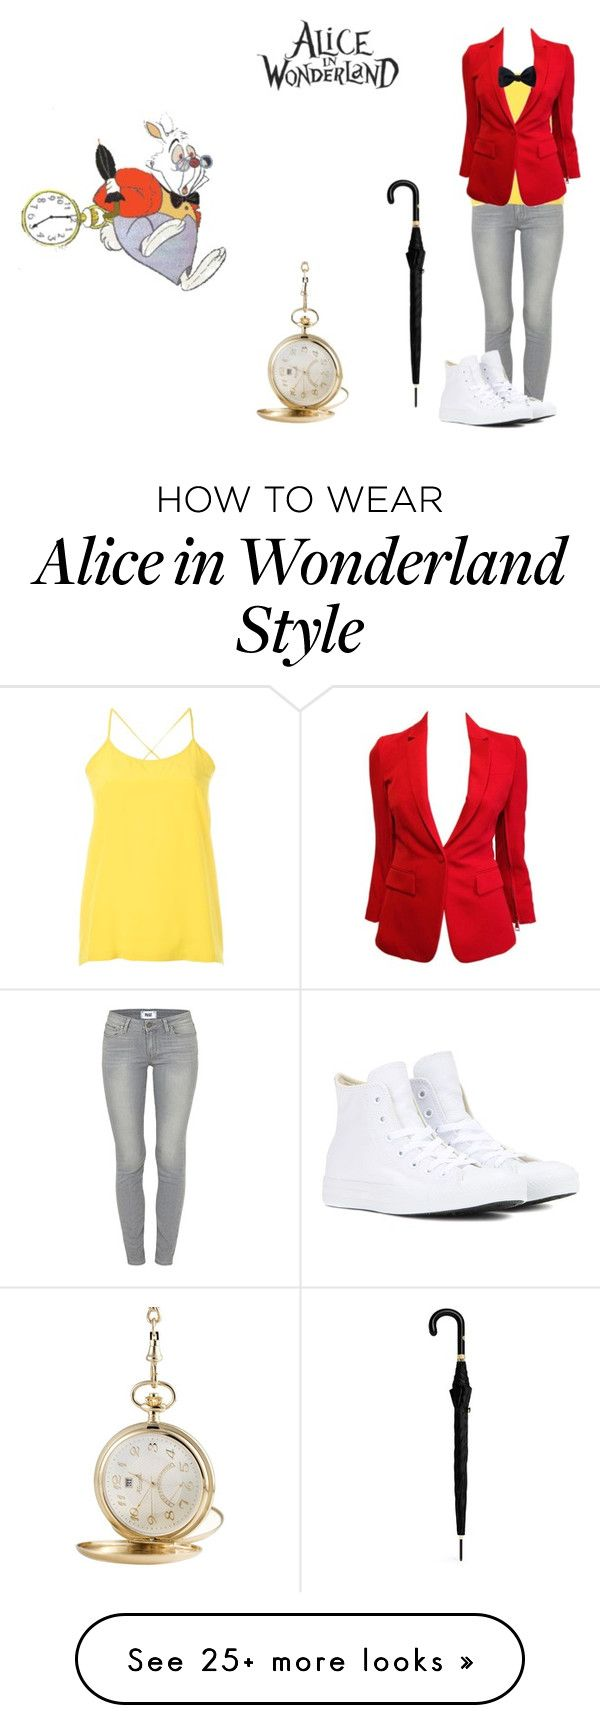 """White Rabbit"" by melindaisinsane on Polyvore featuring KIENZLE, Paige Denim, Christian Wijnants, Alexander McQueen, Givenchy, Ike Behar, Converse and disney"